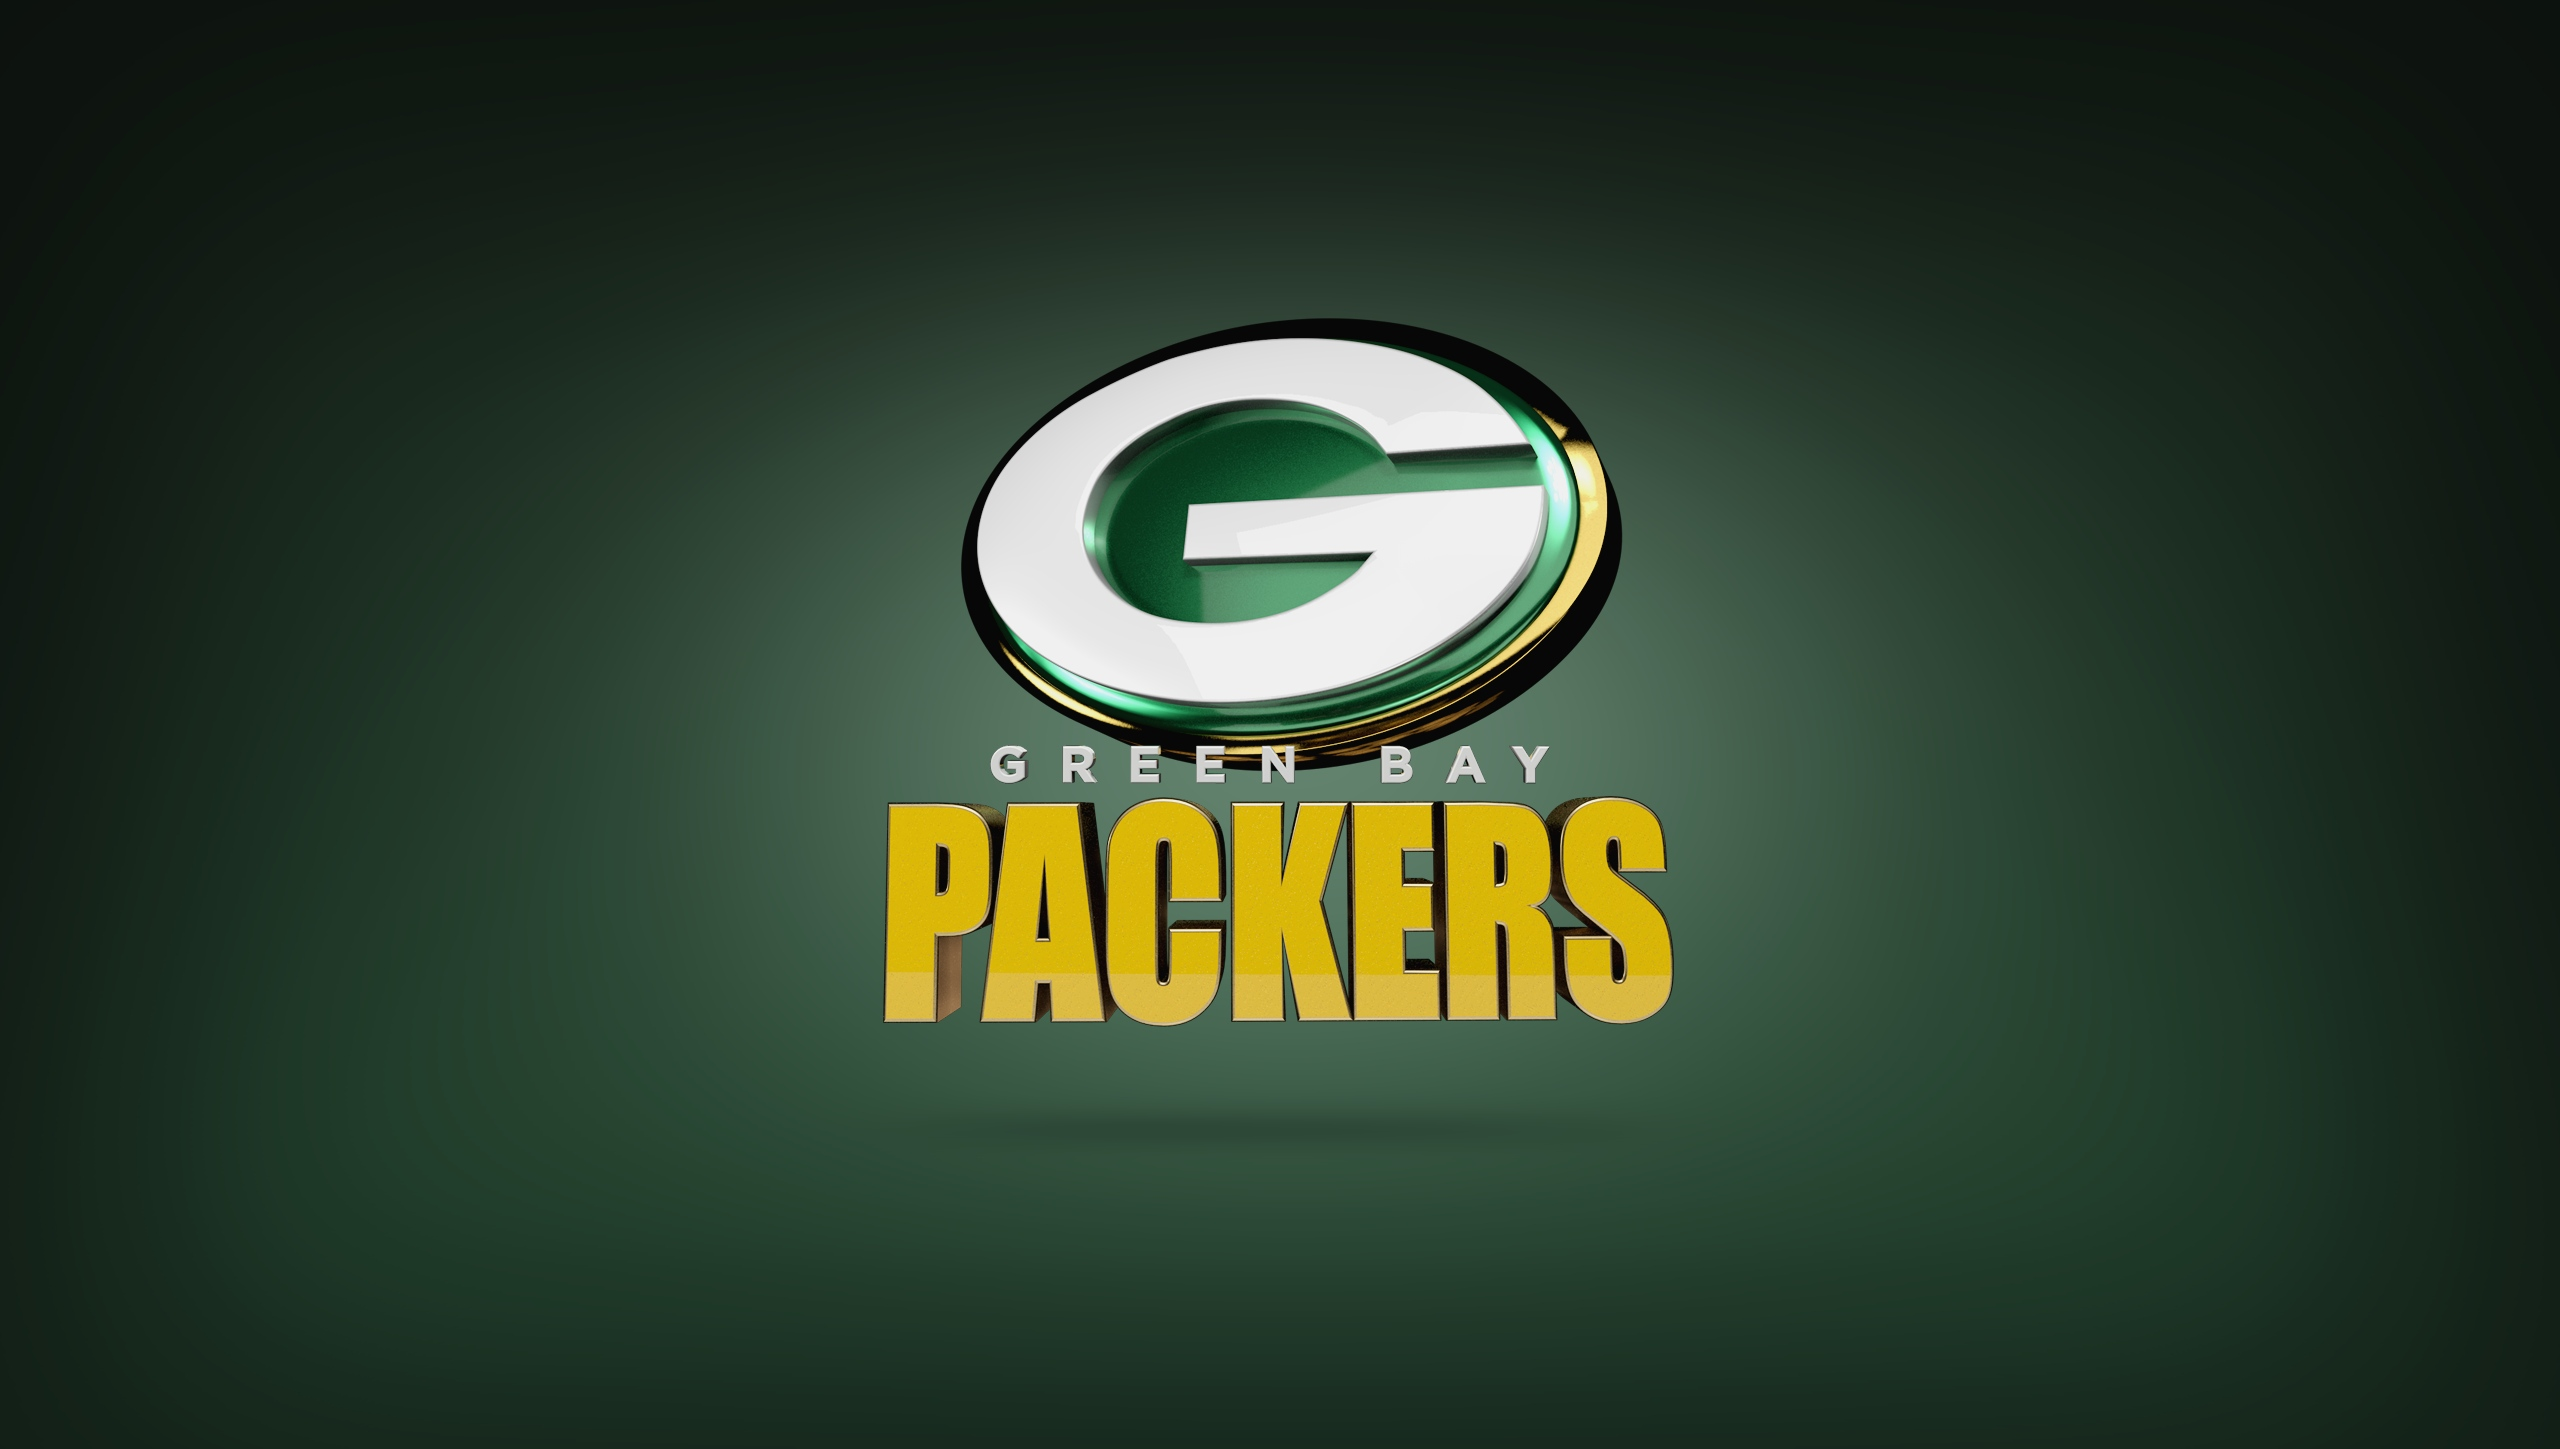 Green Bay Packers Logo Wallpaper Green Bay Packers Emblem